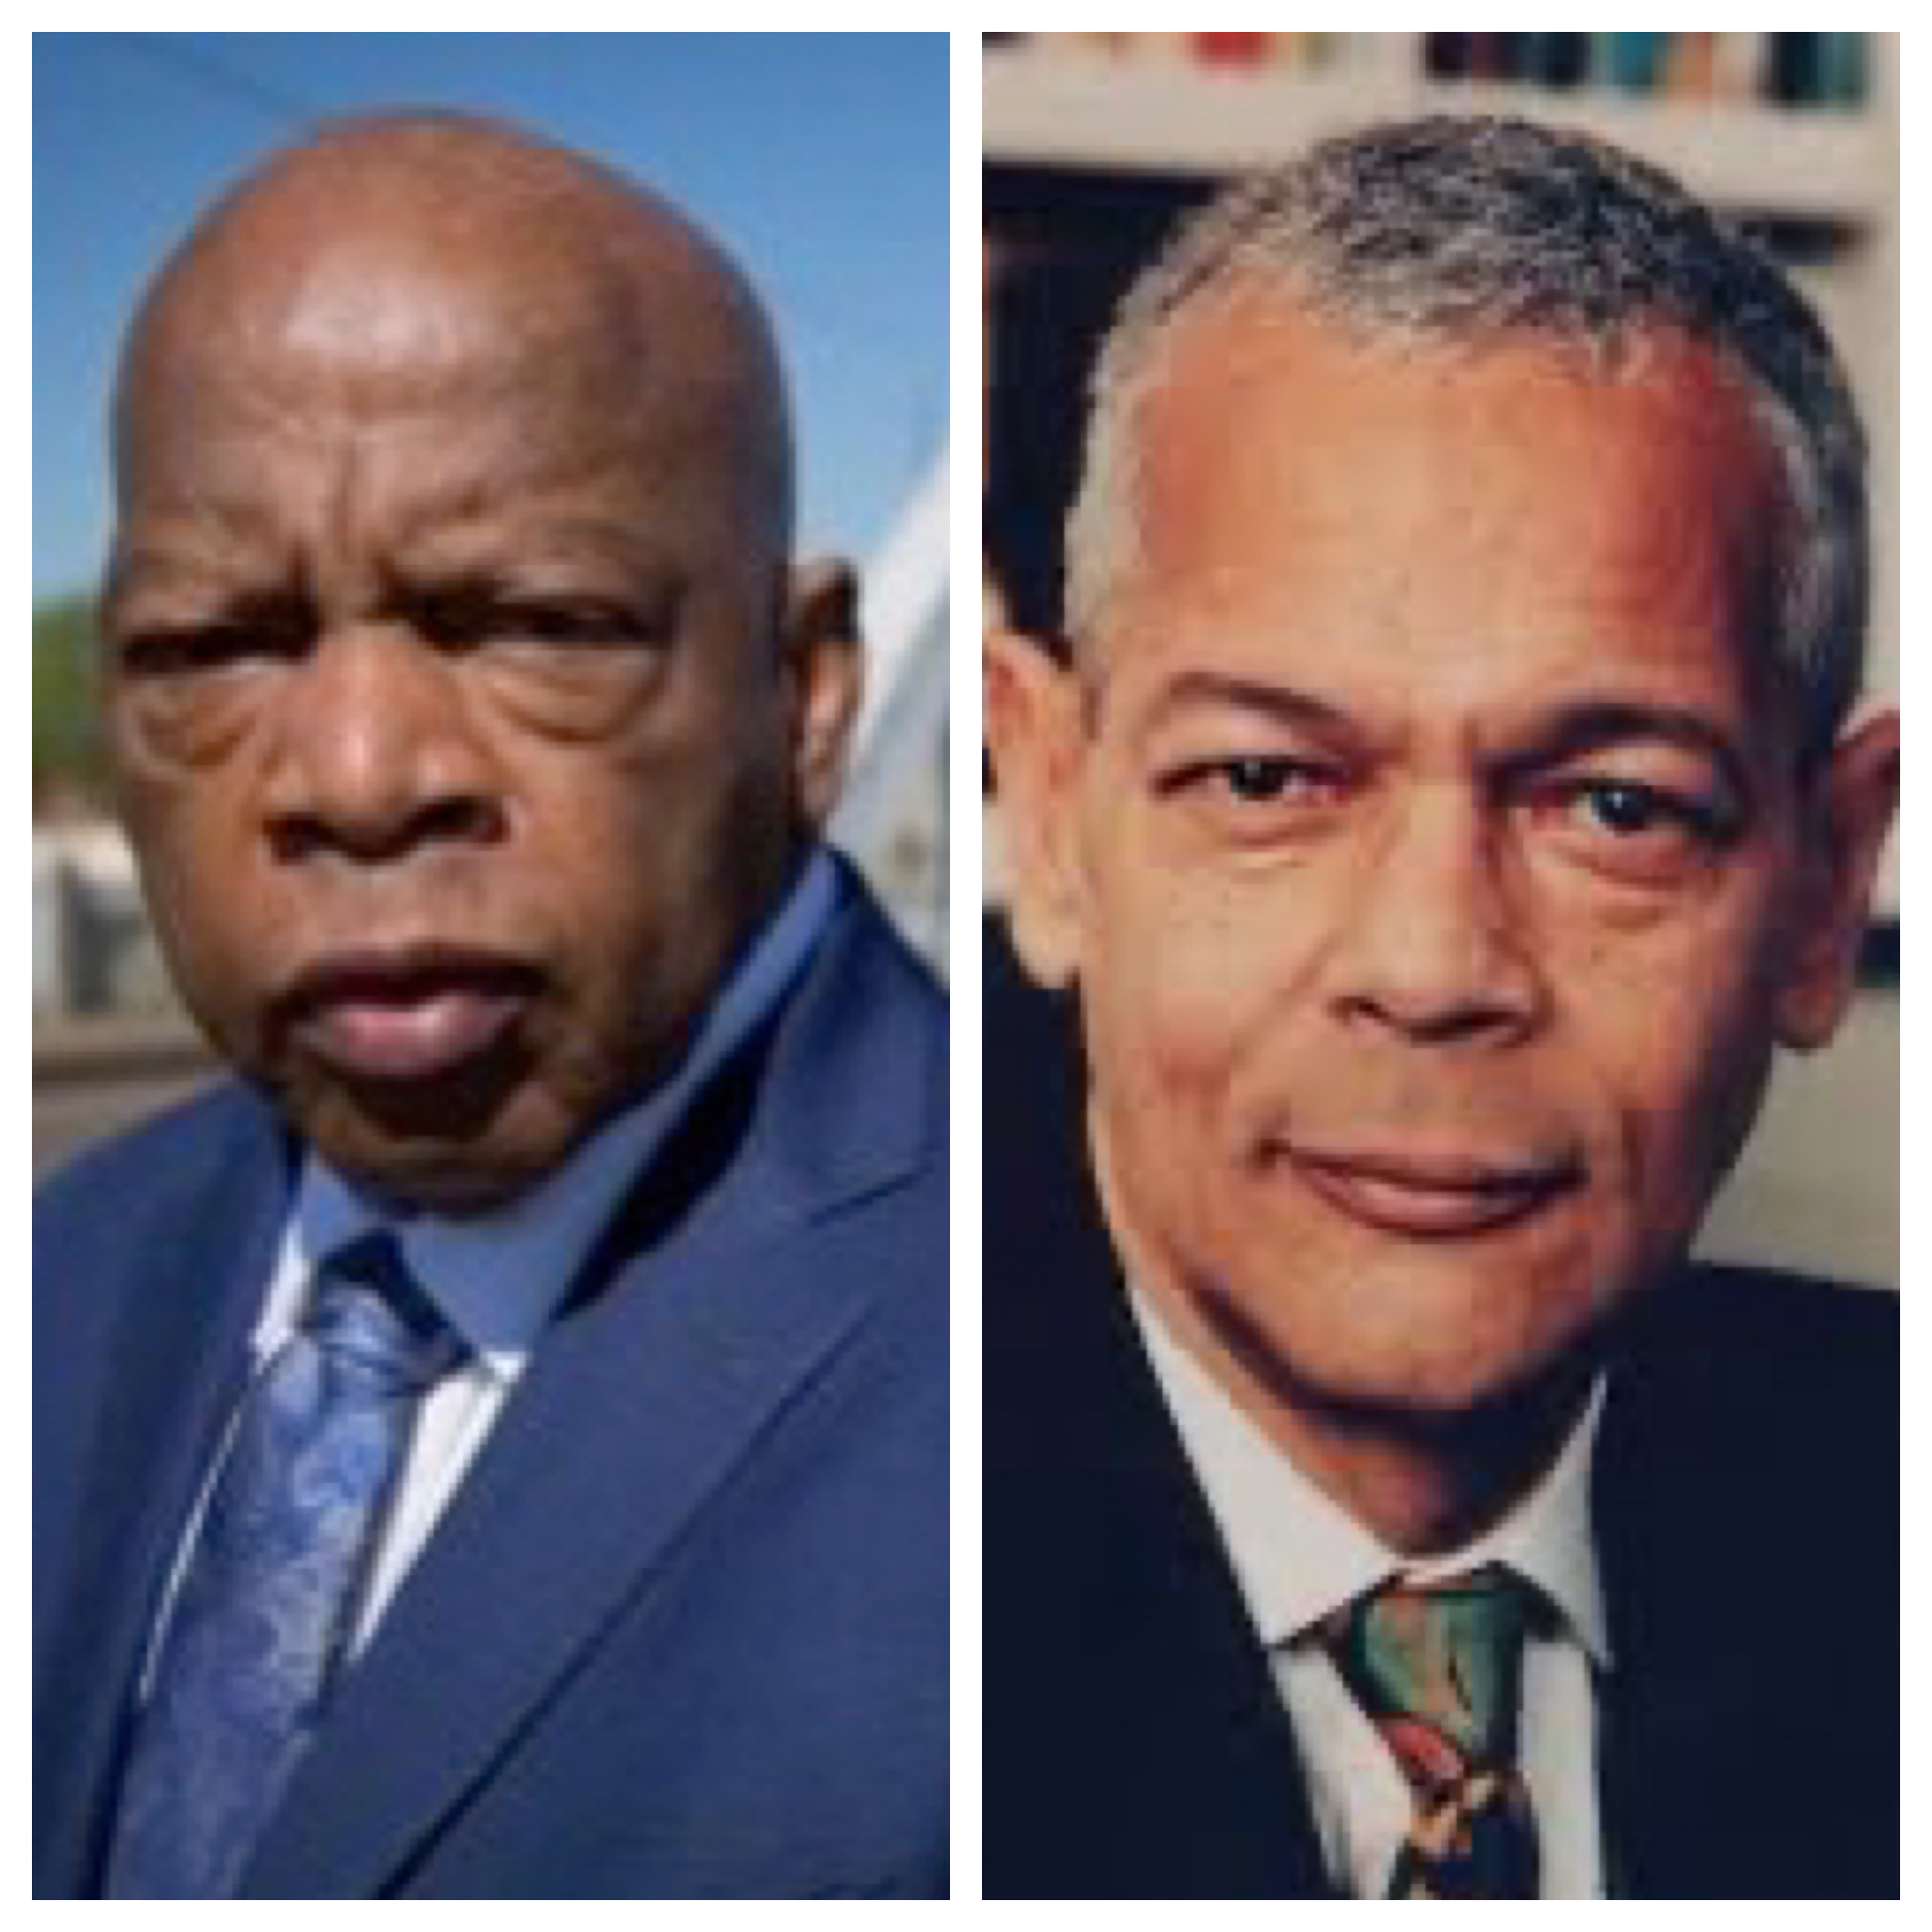 Voices Radio: Eric and Channing honor and pay a heartfelt tribute to the great John Lewis and Julian Bond! Eric and Channing also have a wonderful reunion with Voices listeners.